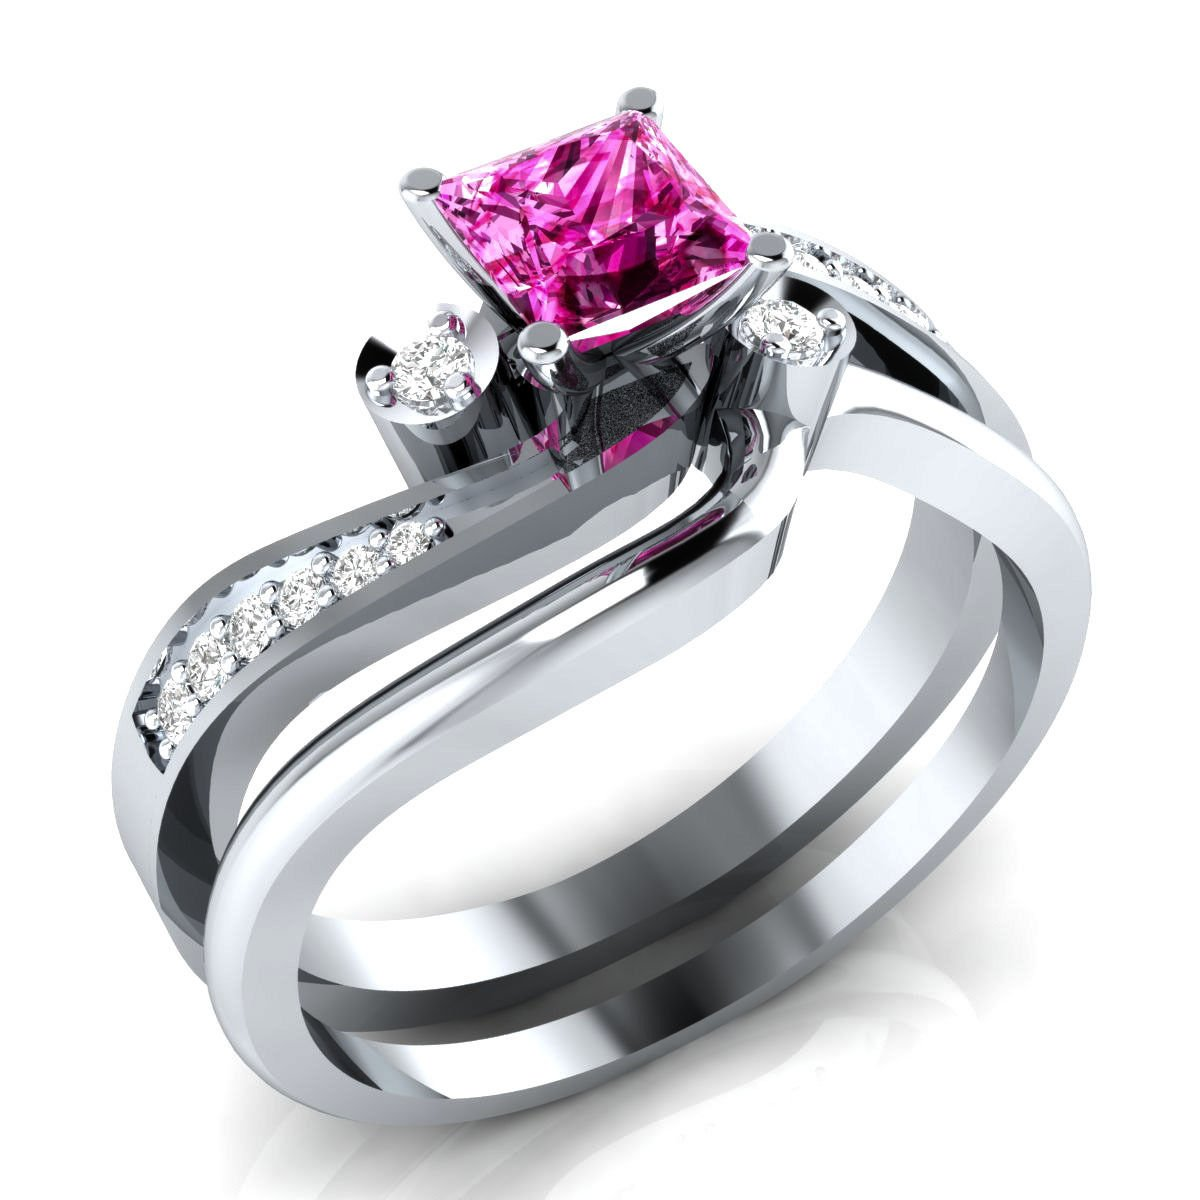 Dream/Jewelry Elegant 1ct Round Round Cut Solitaire Halo Created Pink Sapphire Wedding Engagement Ring in .925 Sterling Silver Plated